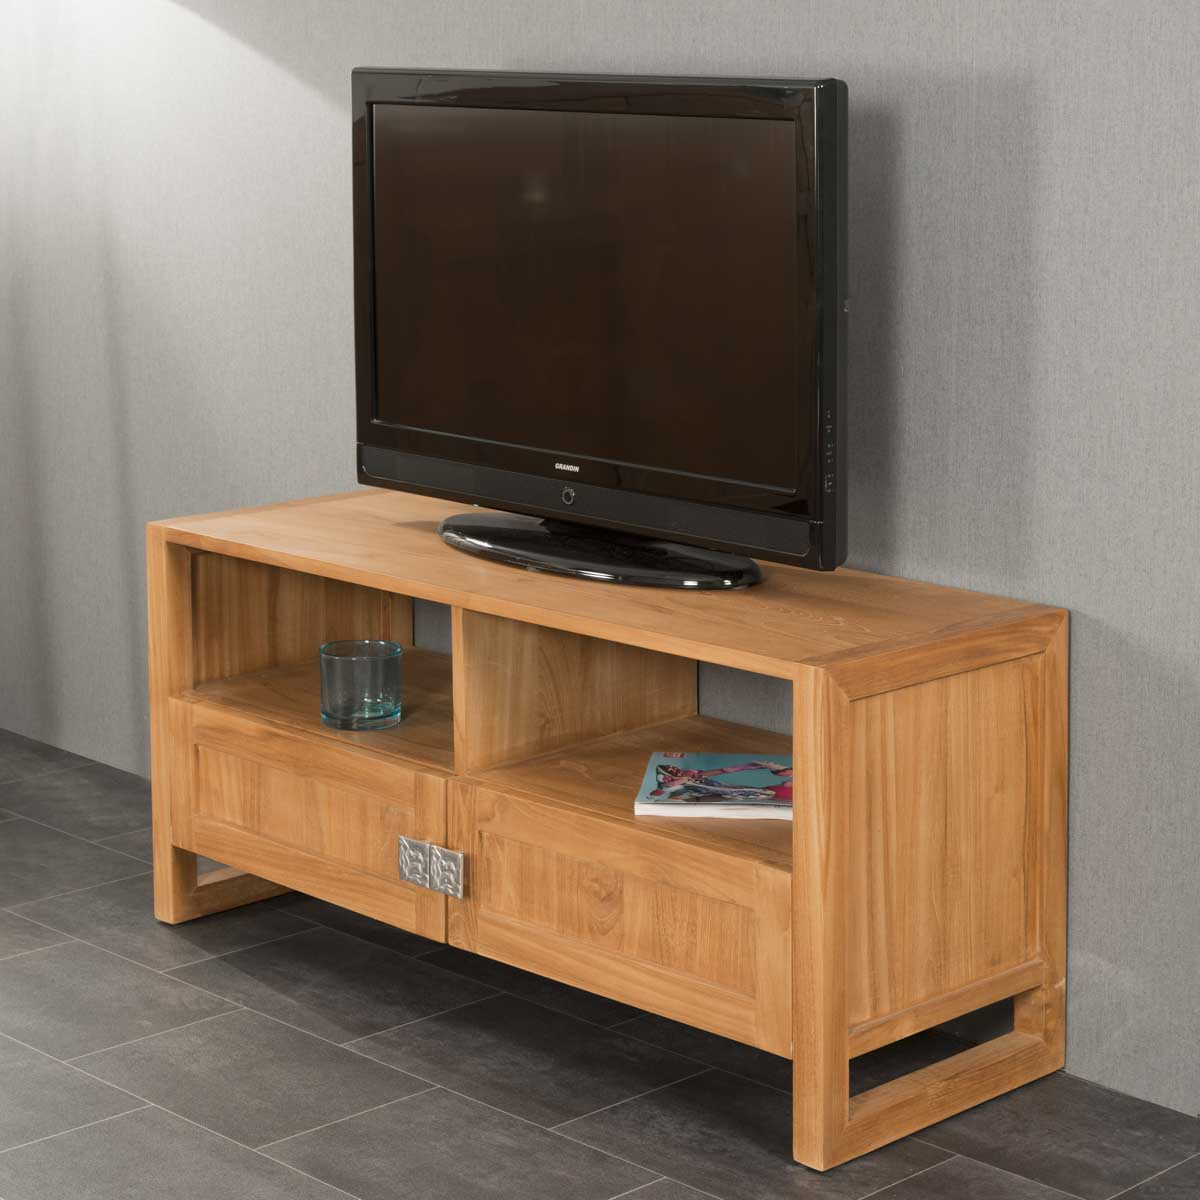 Meuble Tv Teck Meuble Tv Bois Naturel Rectangle Th A 110 X 50 Cm # Meuble Tv En Teck